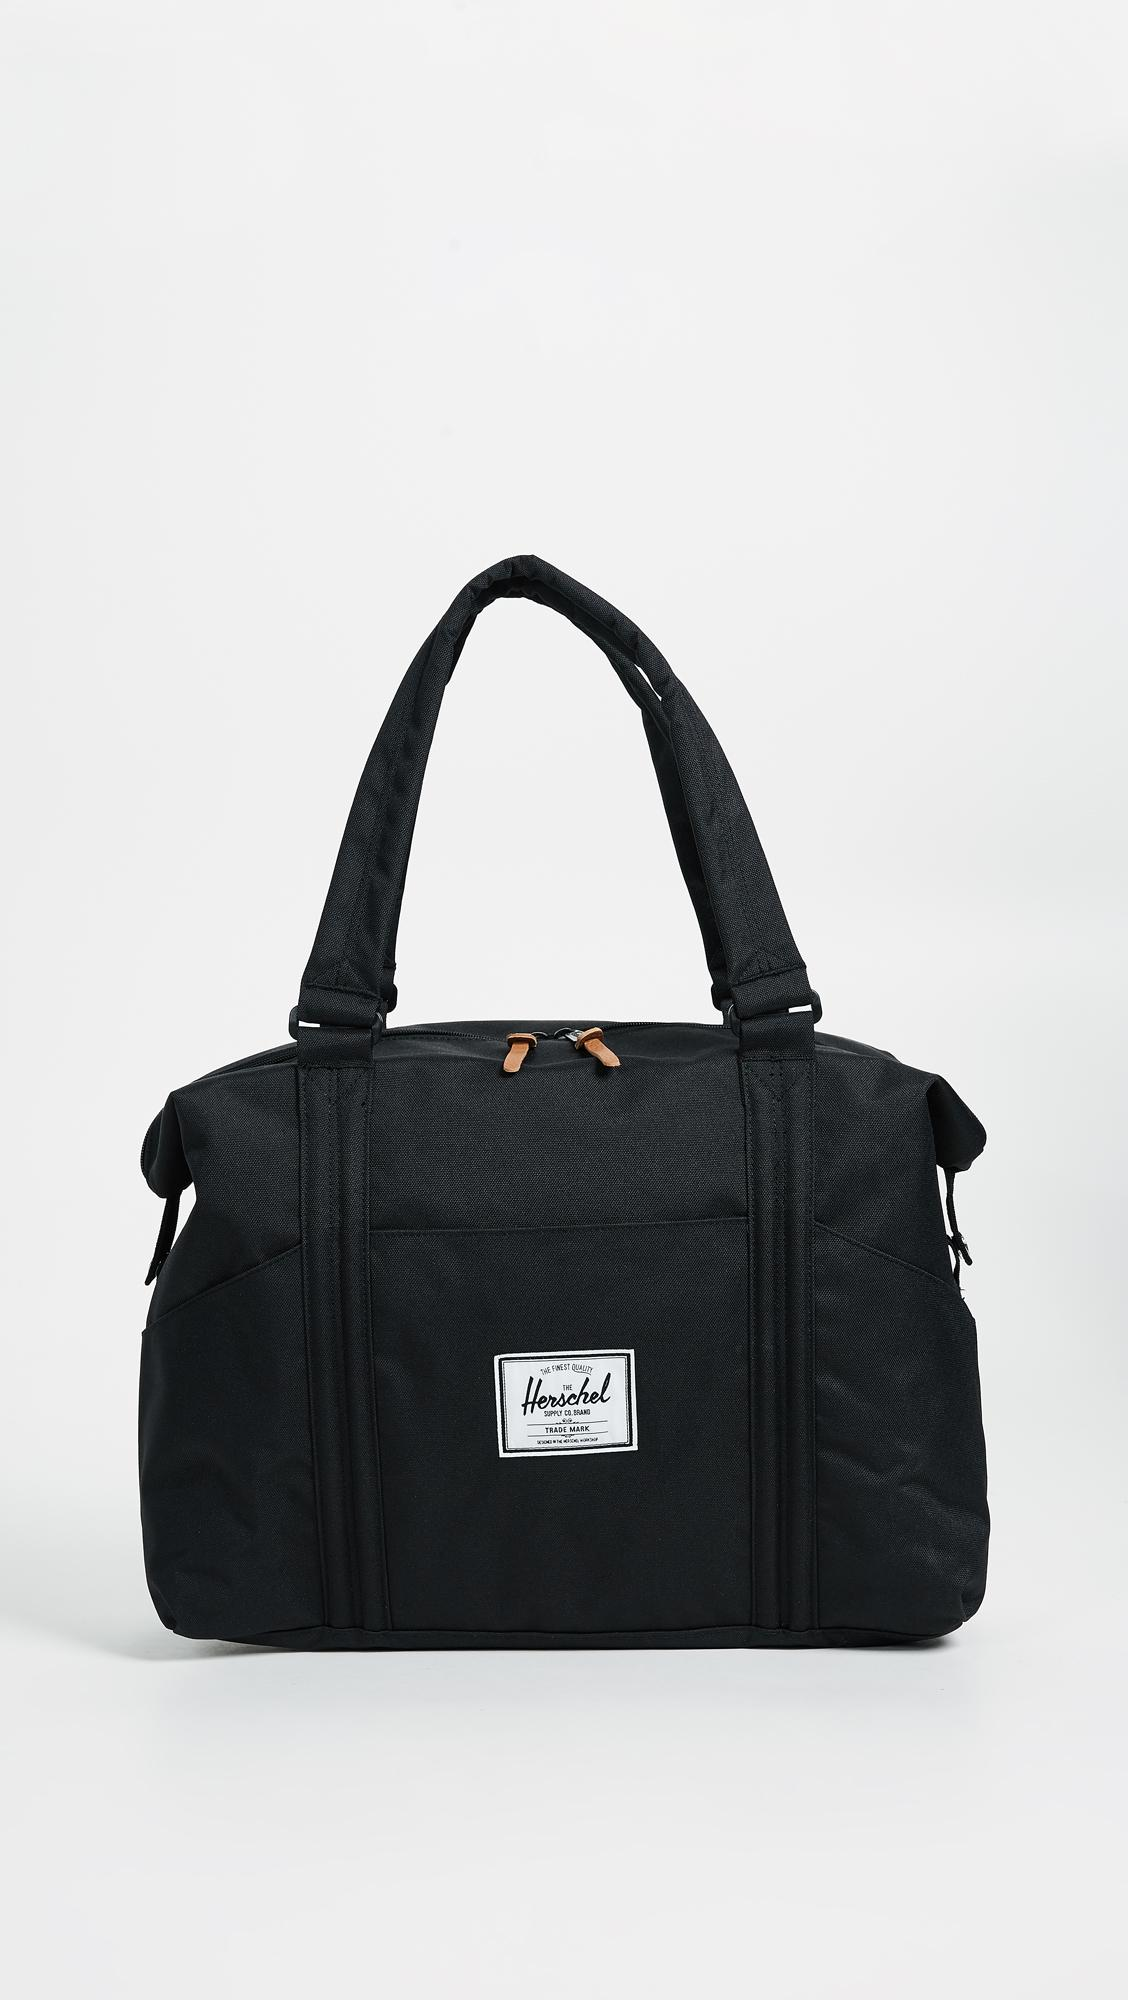 c26fcc872aab Lyst - Herschel Supply Co. Strand Duffel Bag in Black